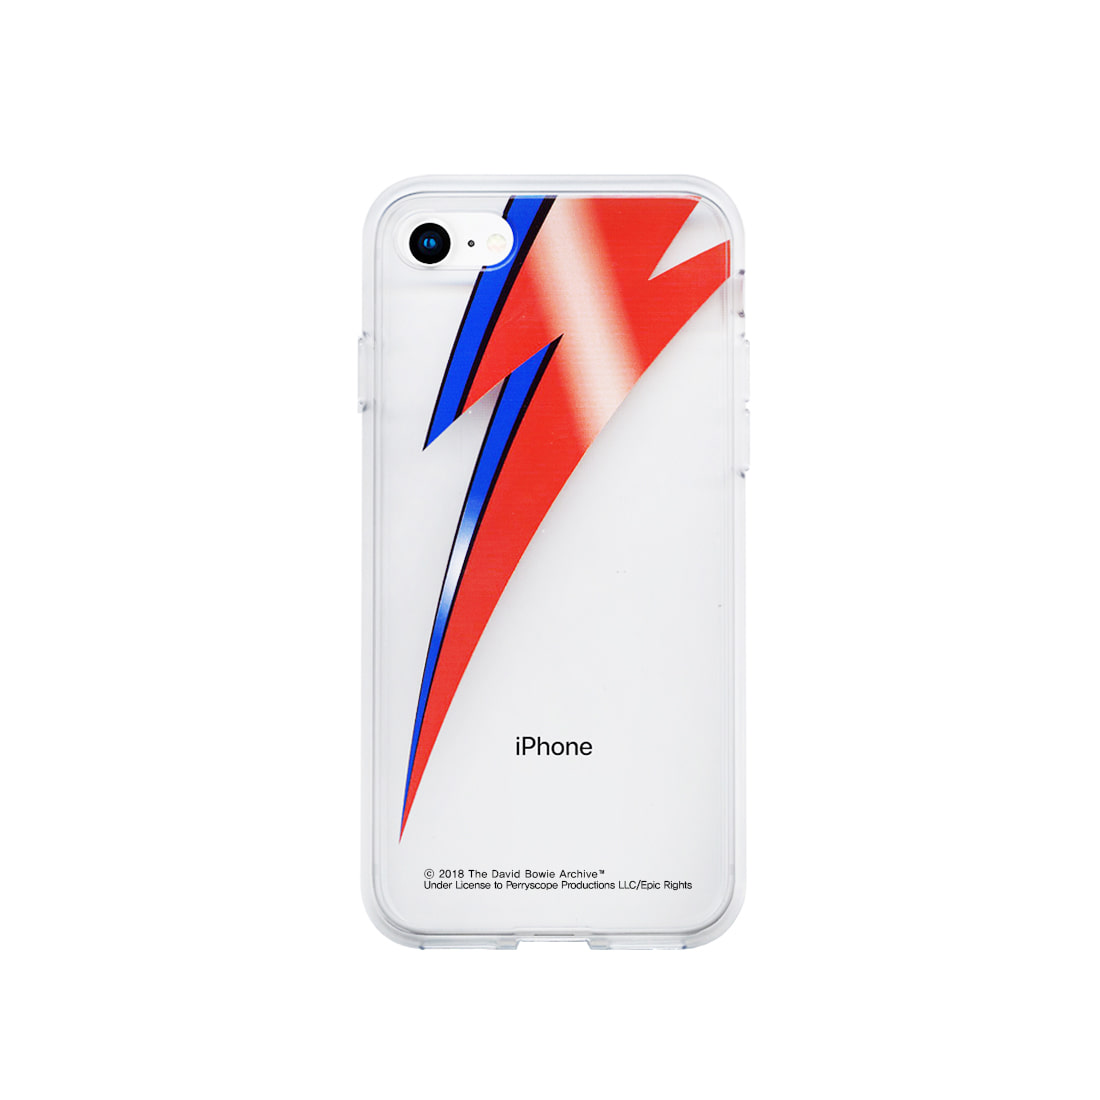 DAVID BOWIE BOLT IPHONE 7/8 CLEAR CASE (BRENT195)